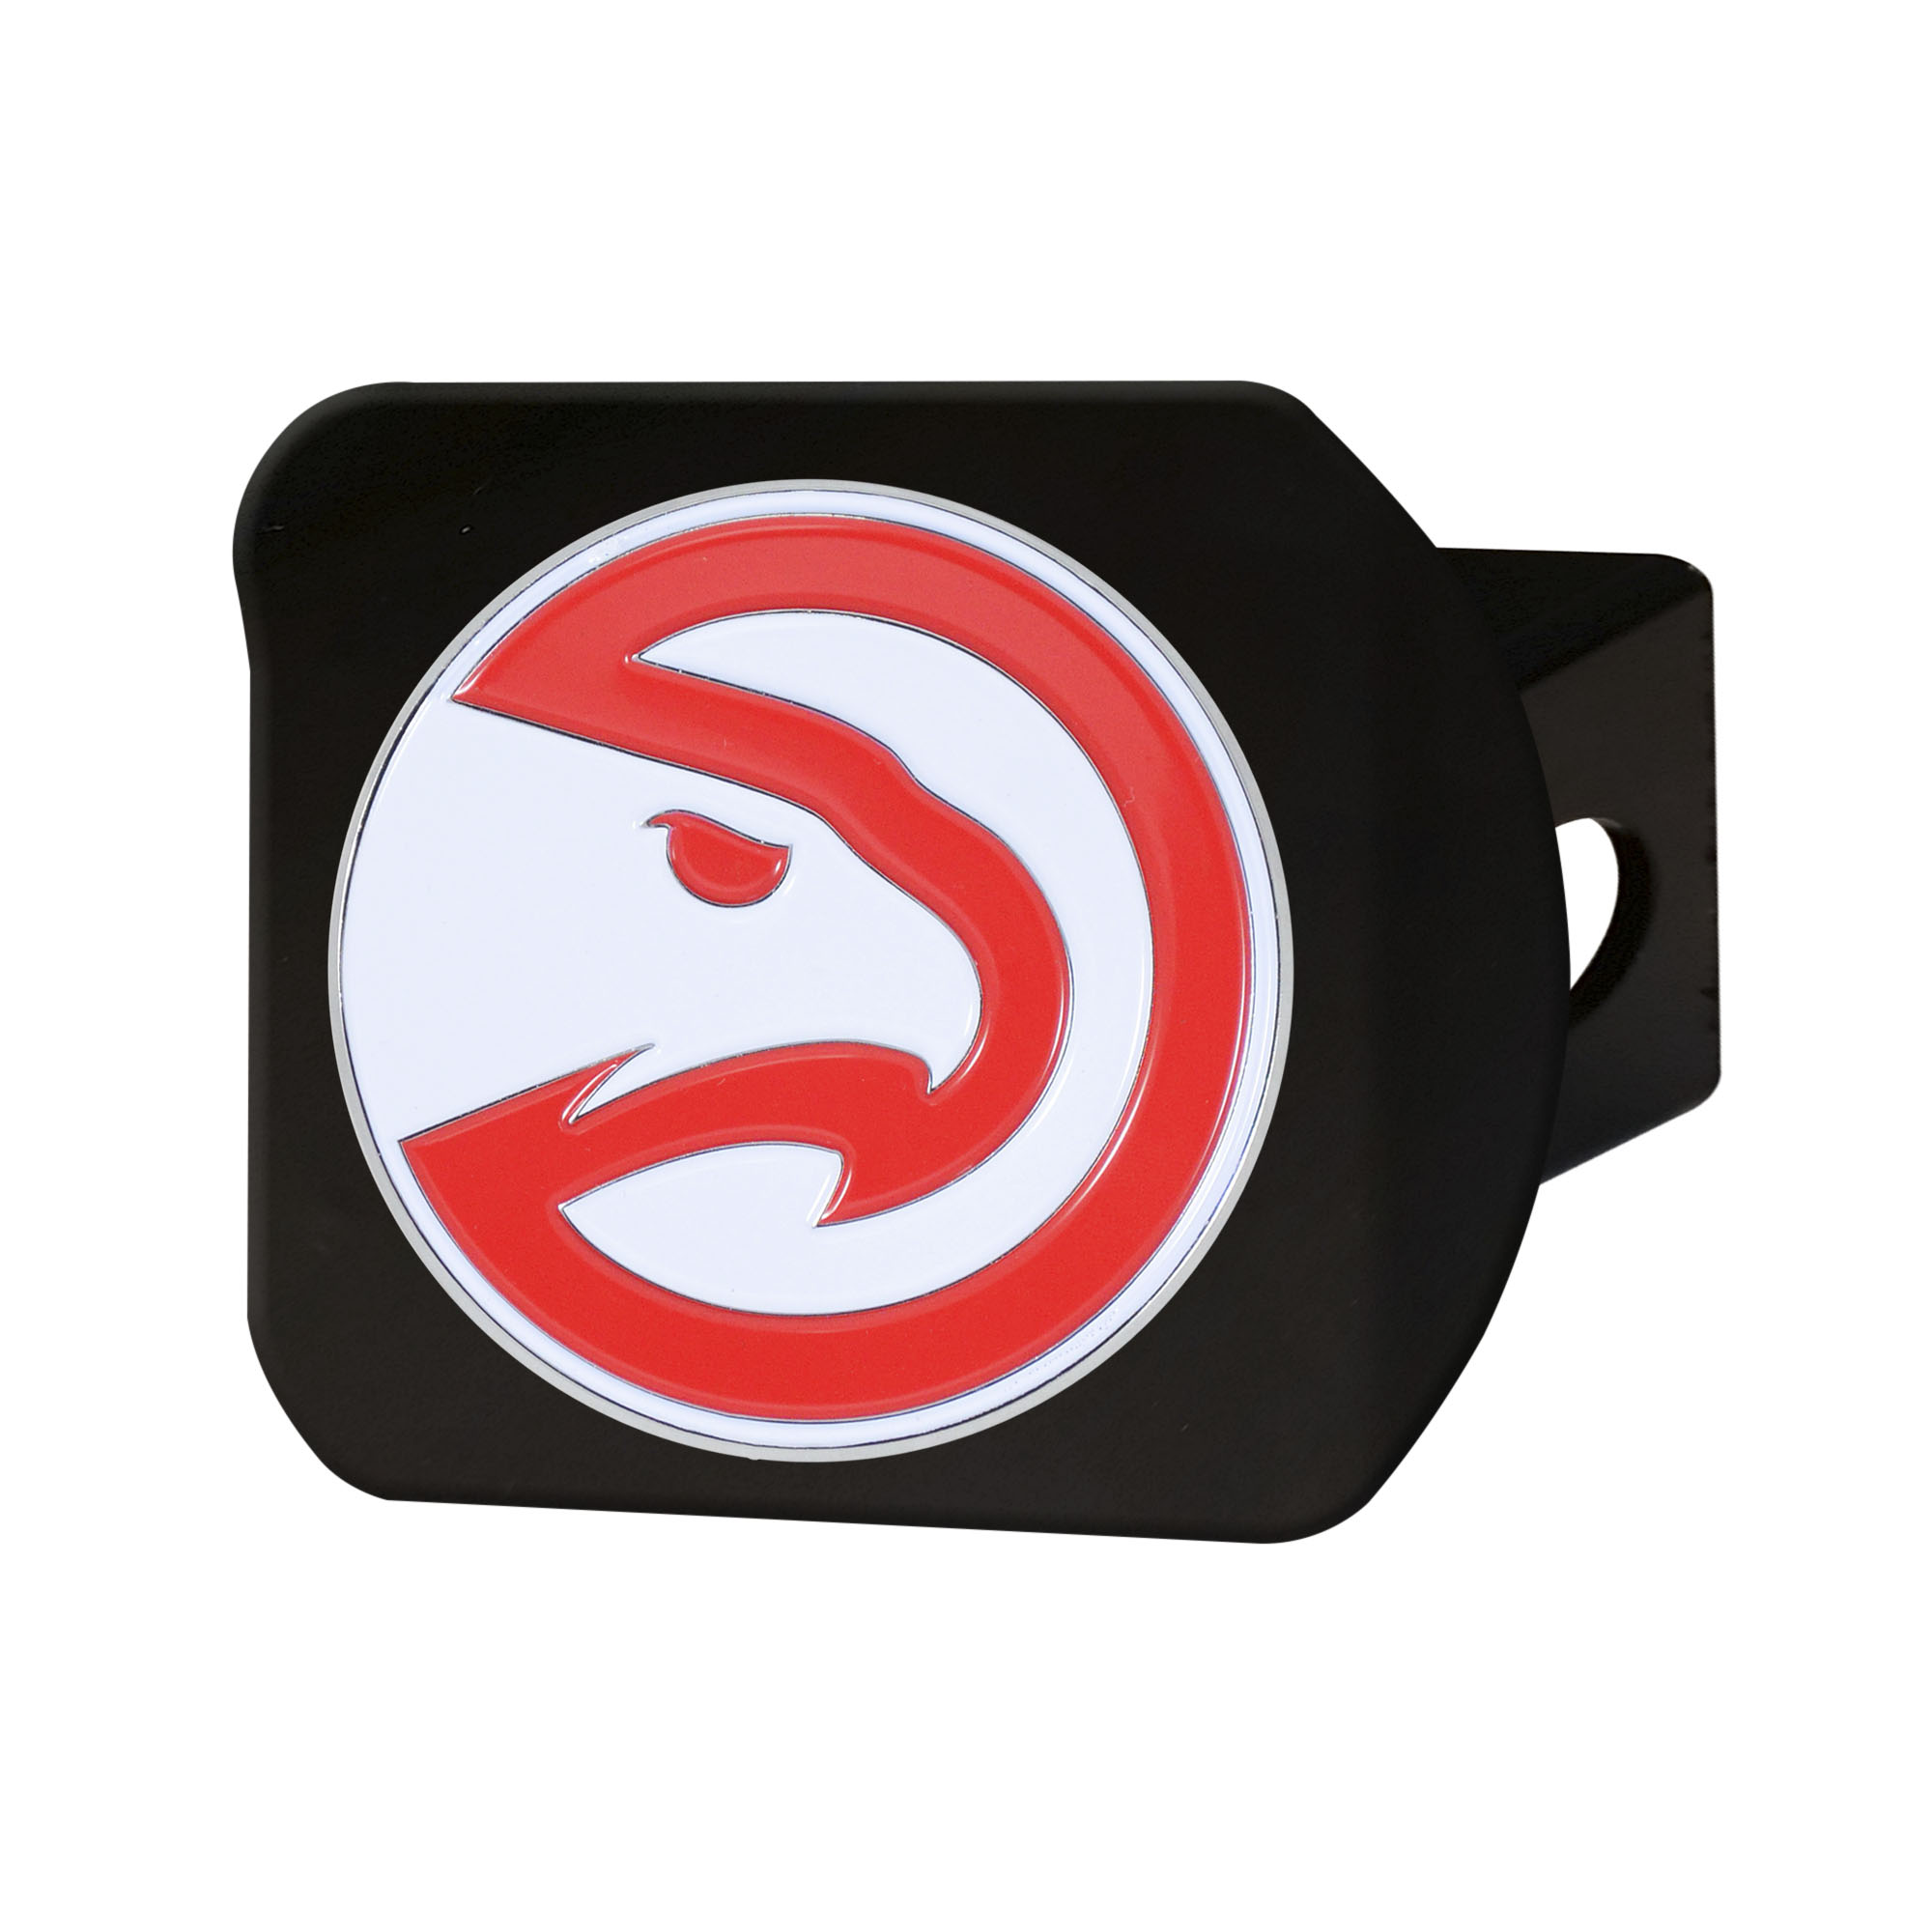 NBA Atlanta Hawks Color Class III Hitch - Black Hitch Cover Auto Accessory